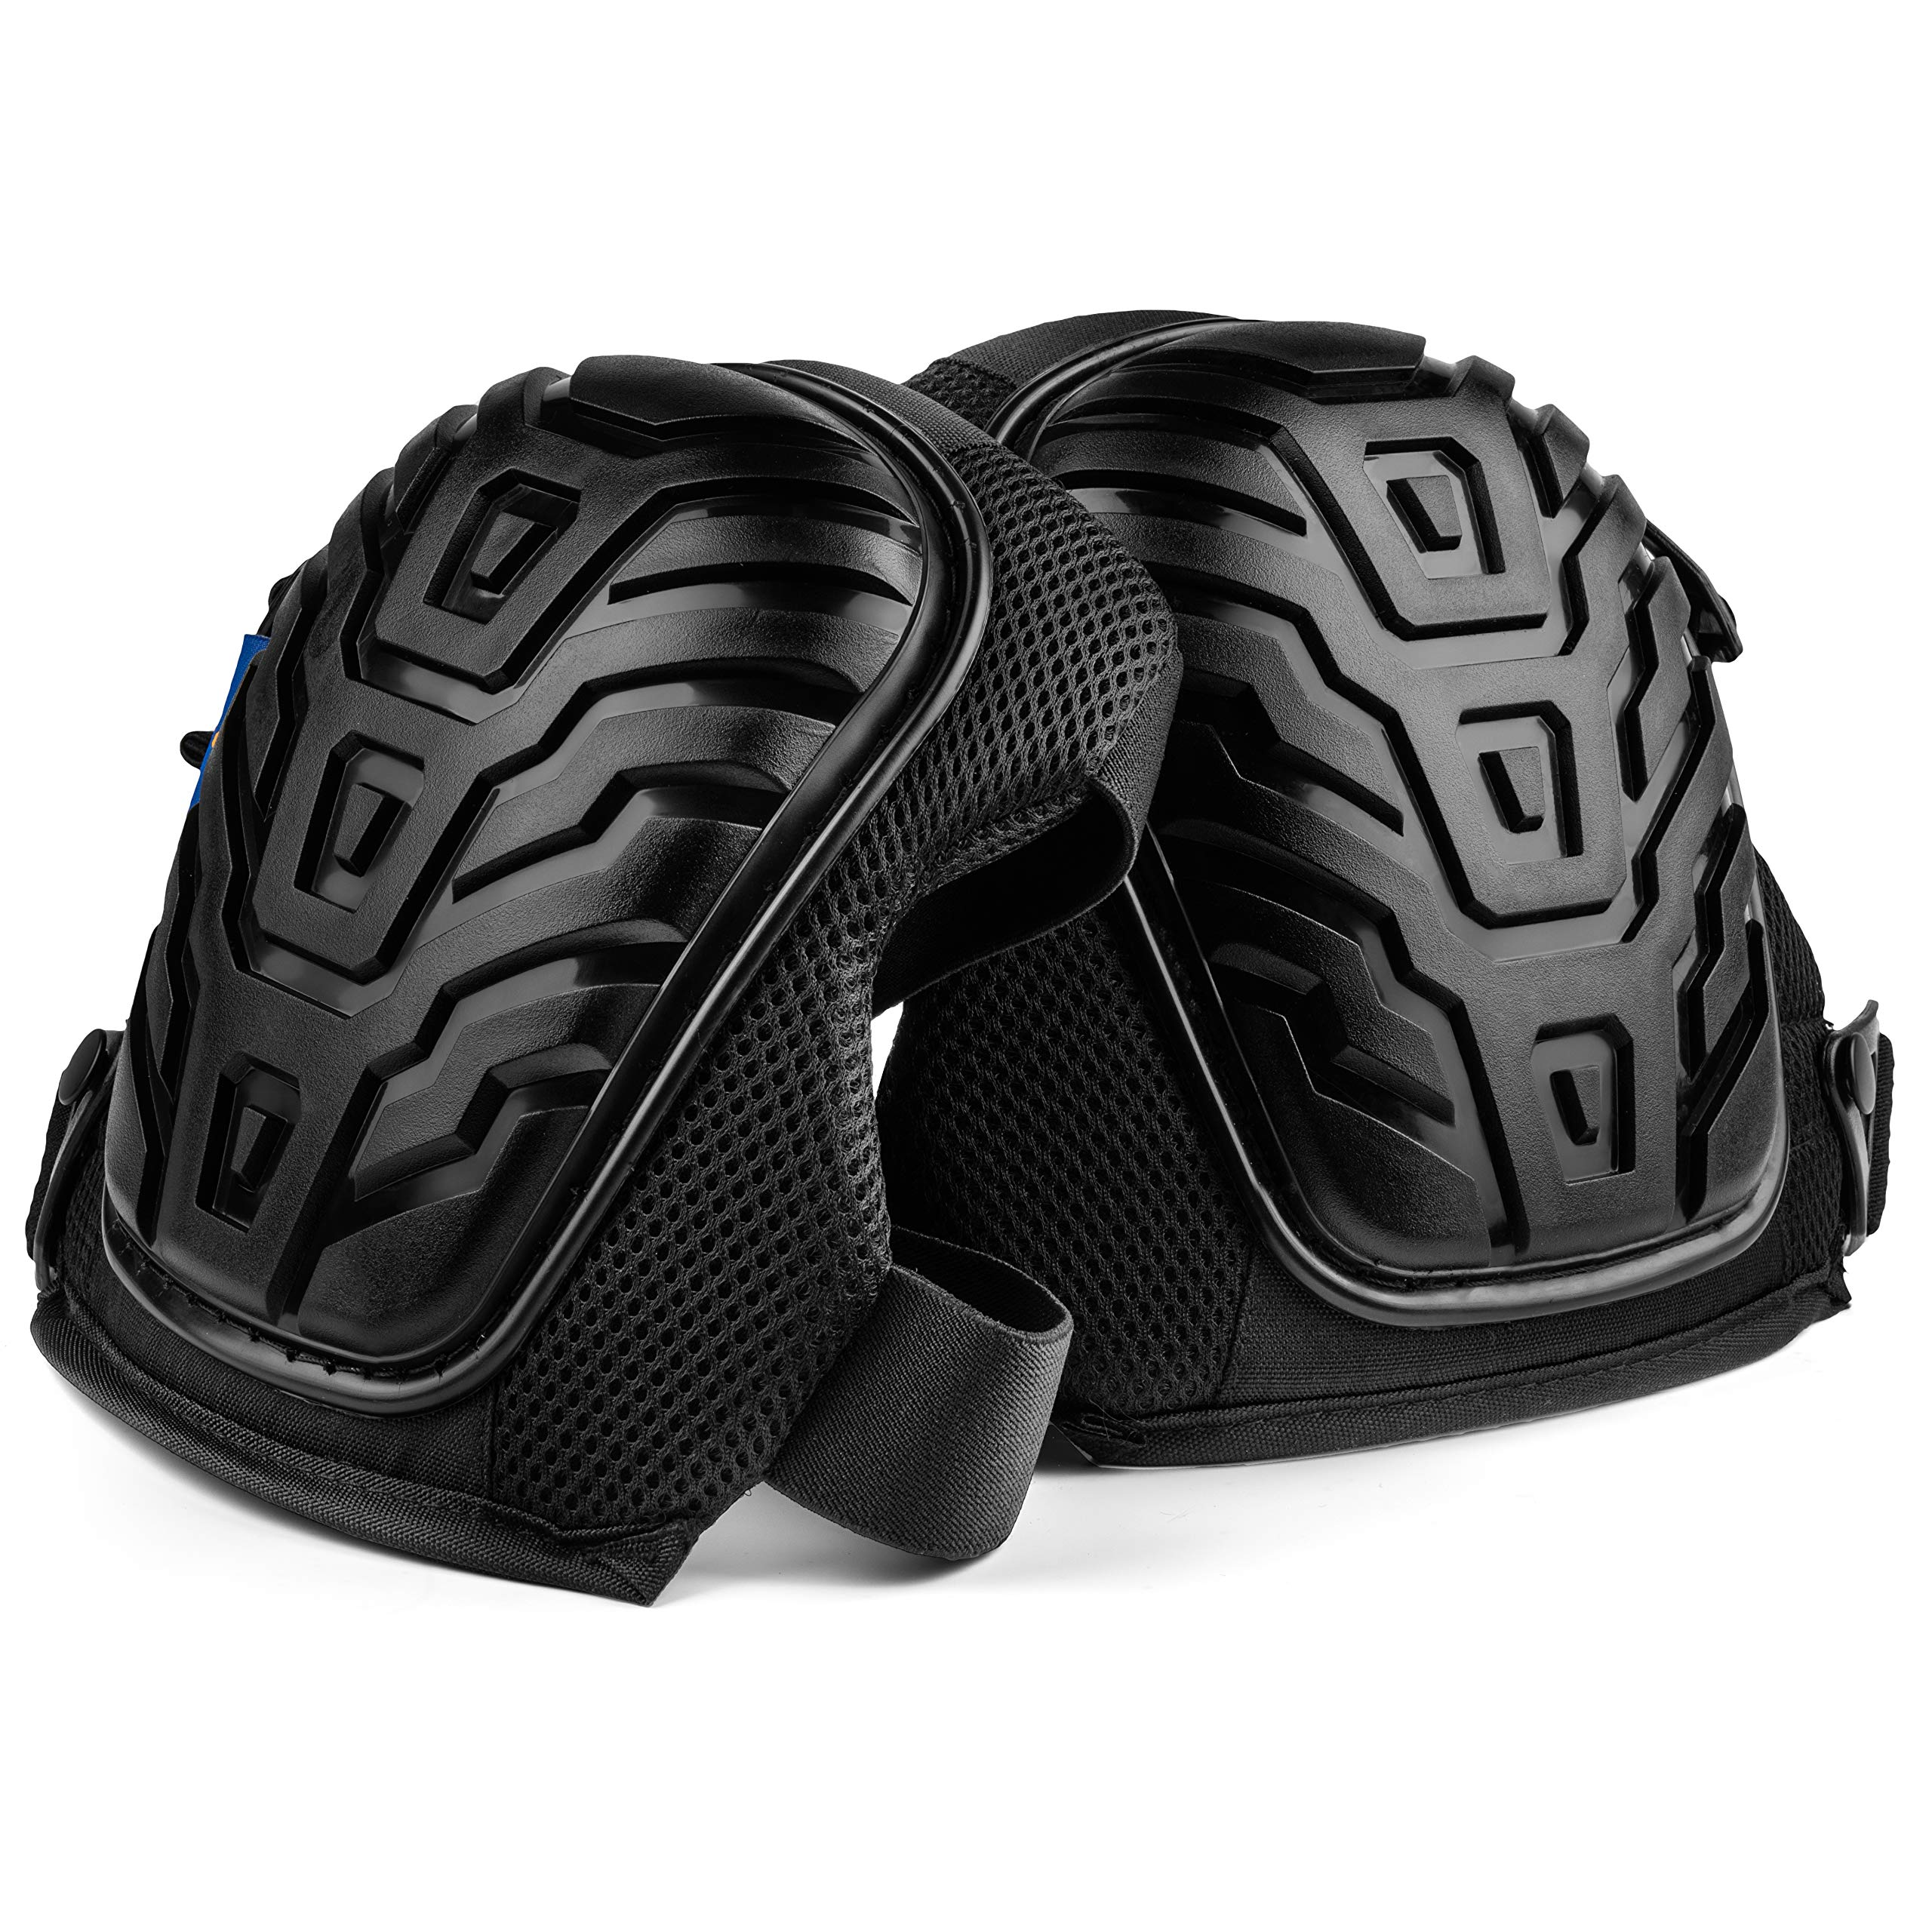 Rough Work Gear Professional Knee Pads - Built Tough To Last - Will Stay In Place All Day Long